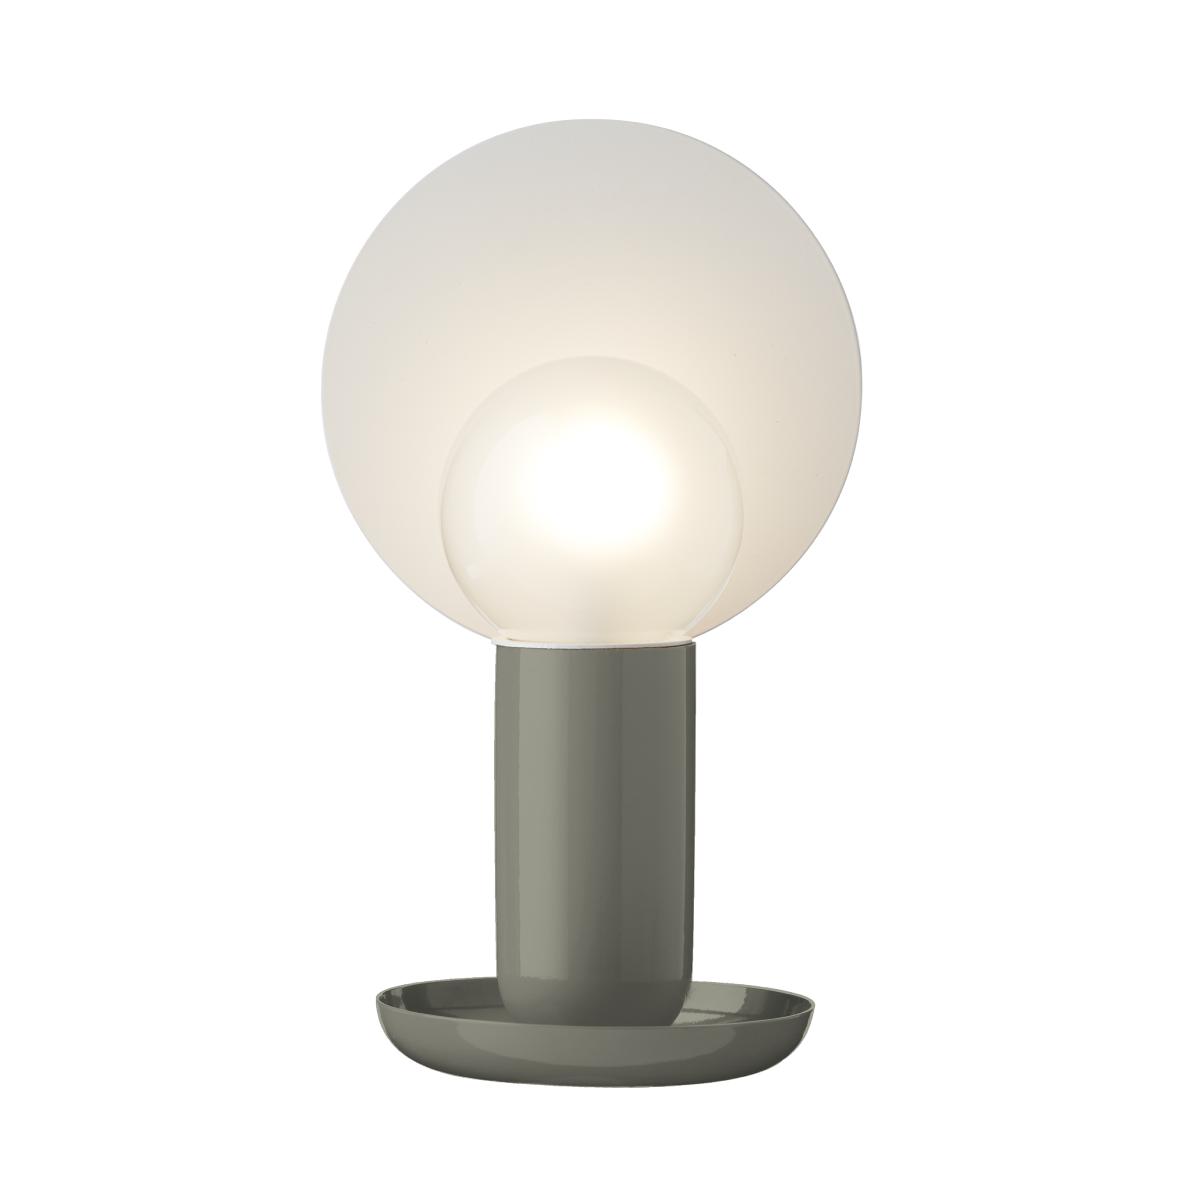 ISM Objects_Wink quartz grey_contour_Table_LowRes.png